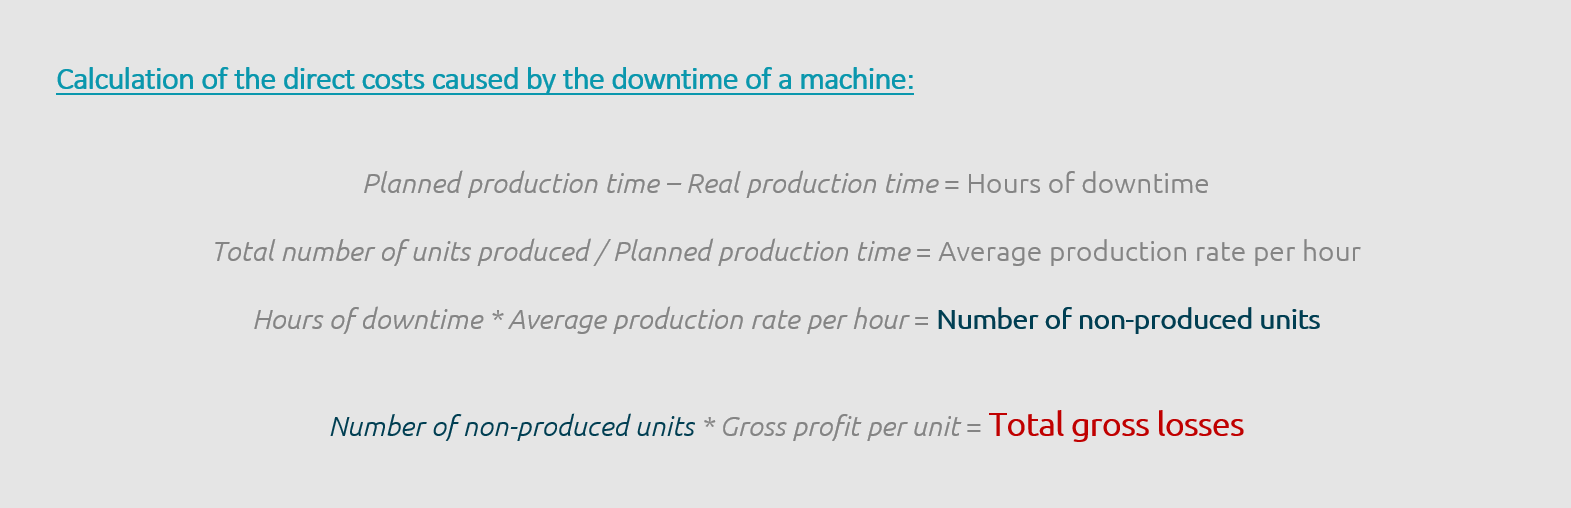 Calculation of direct costs caused by the downtime of a machine